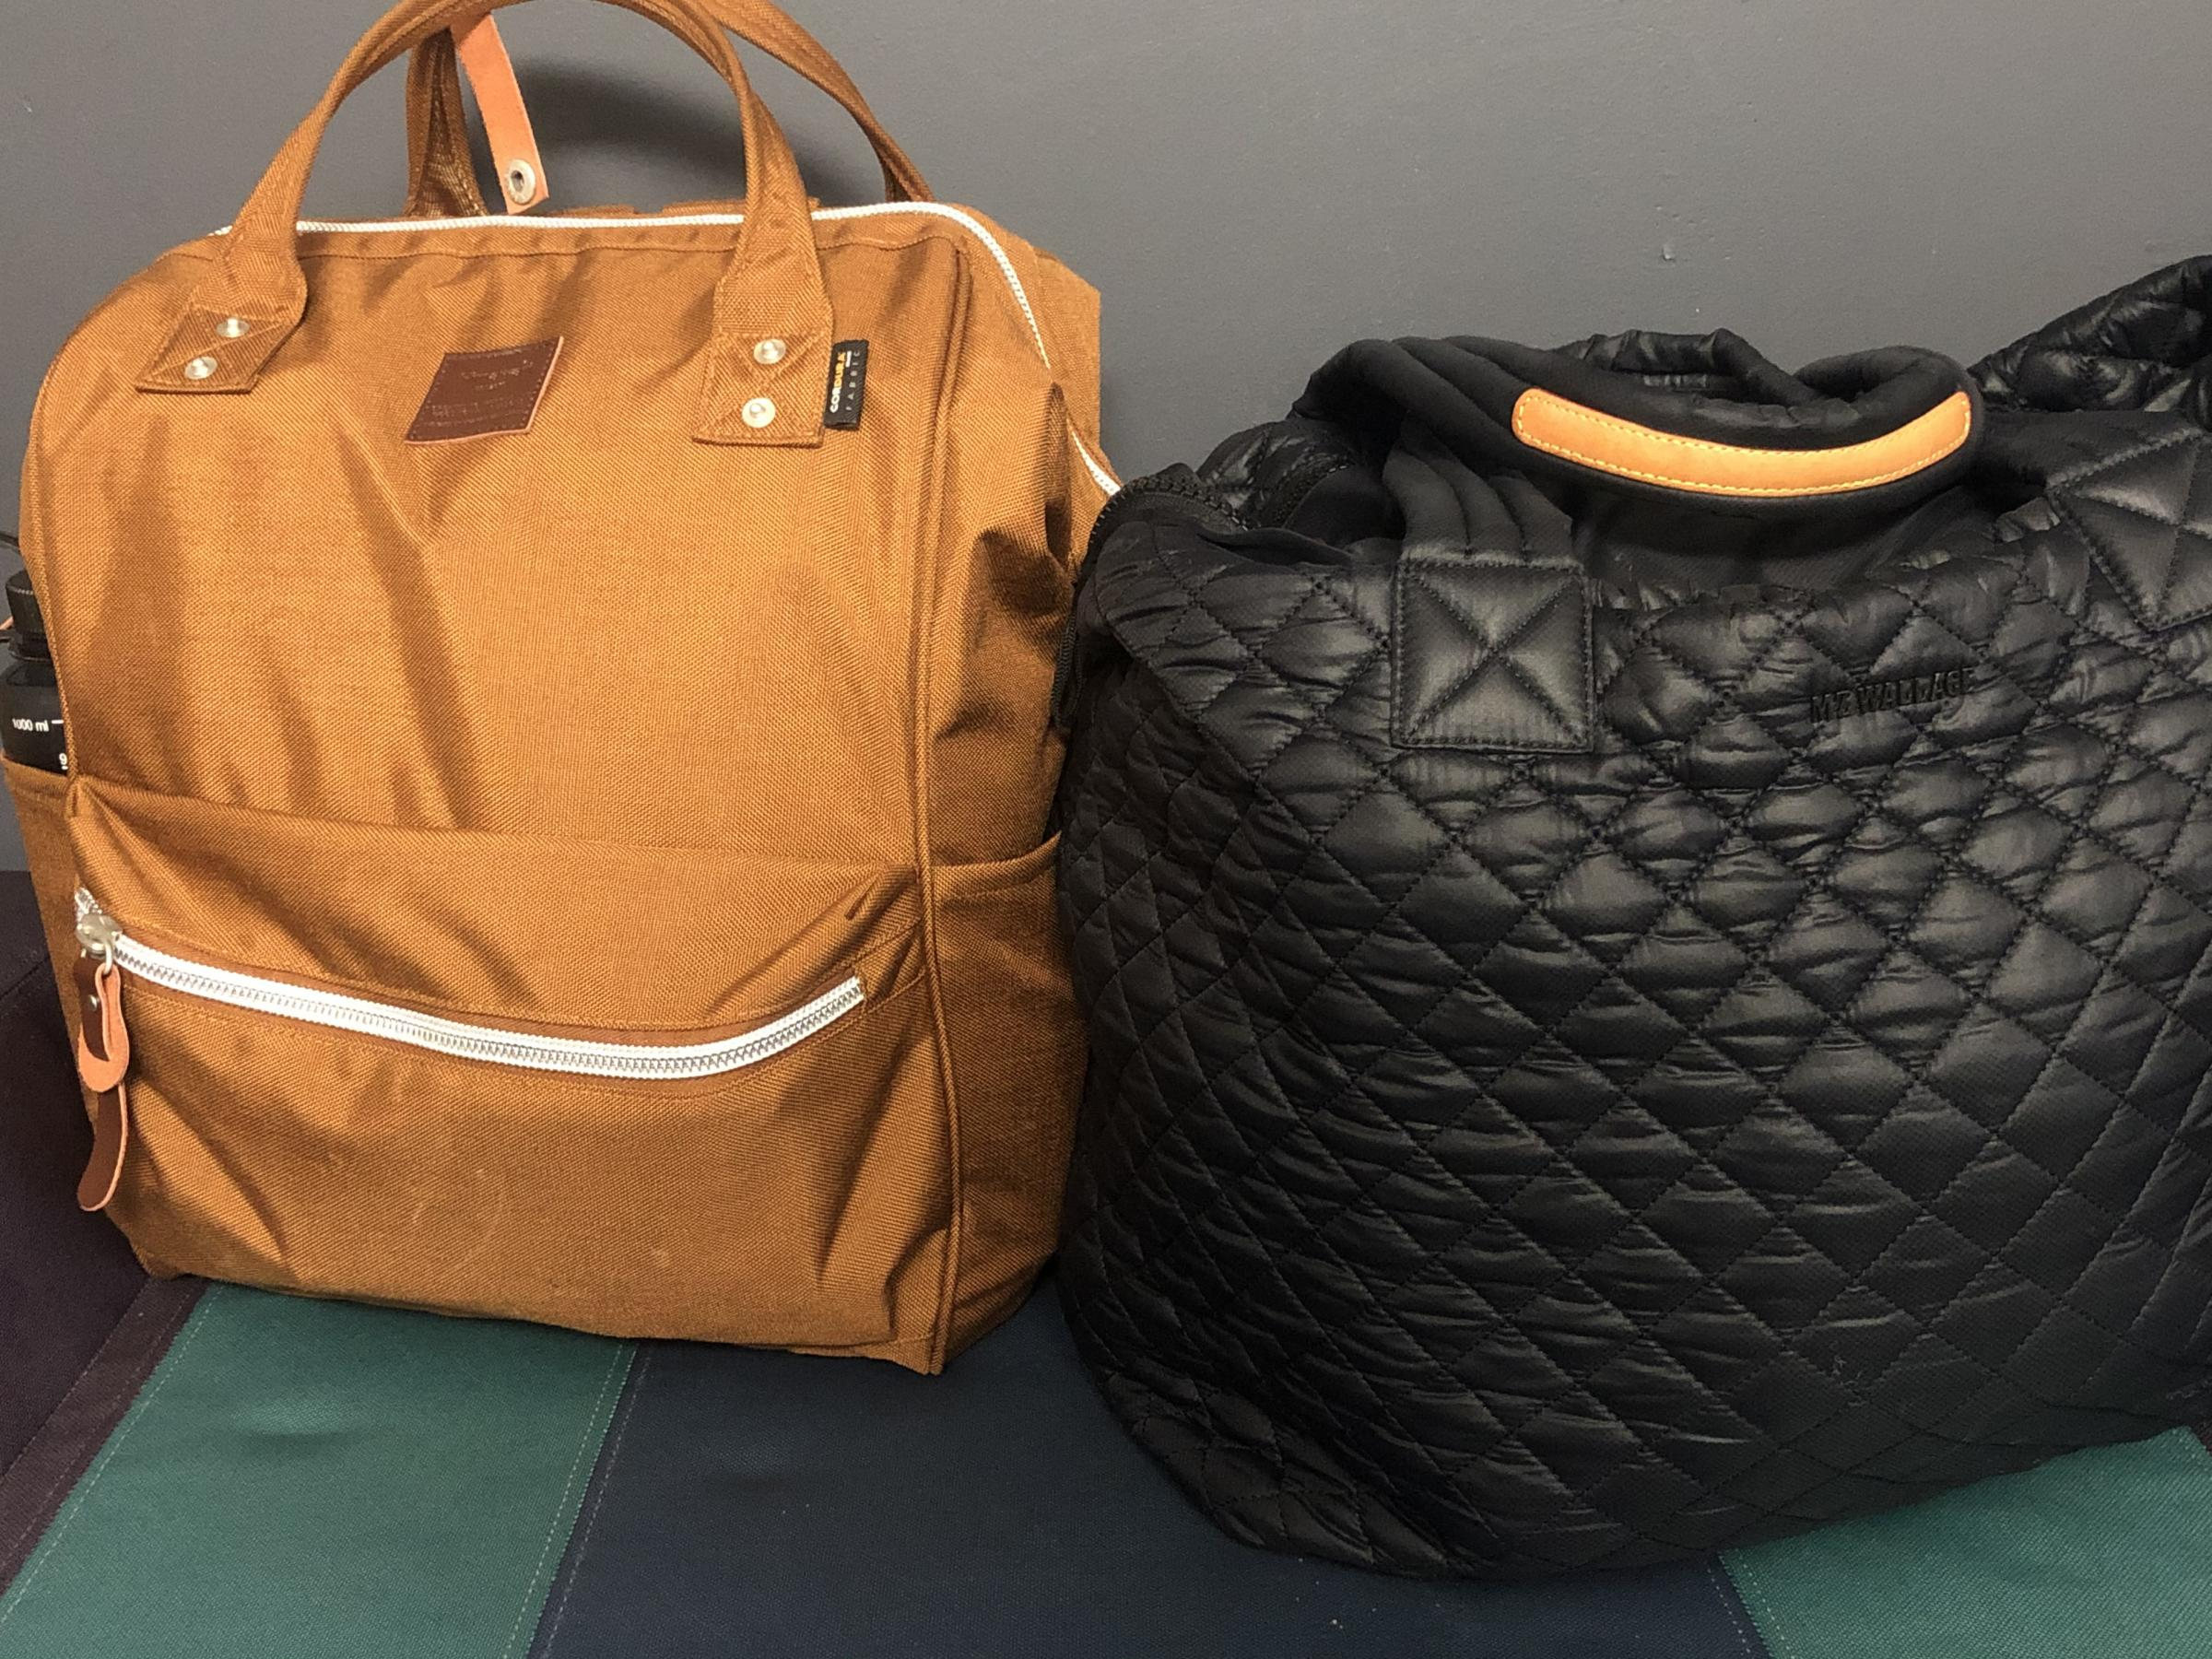 a small goldenrod backpack and small quilted black shoulderbag